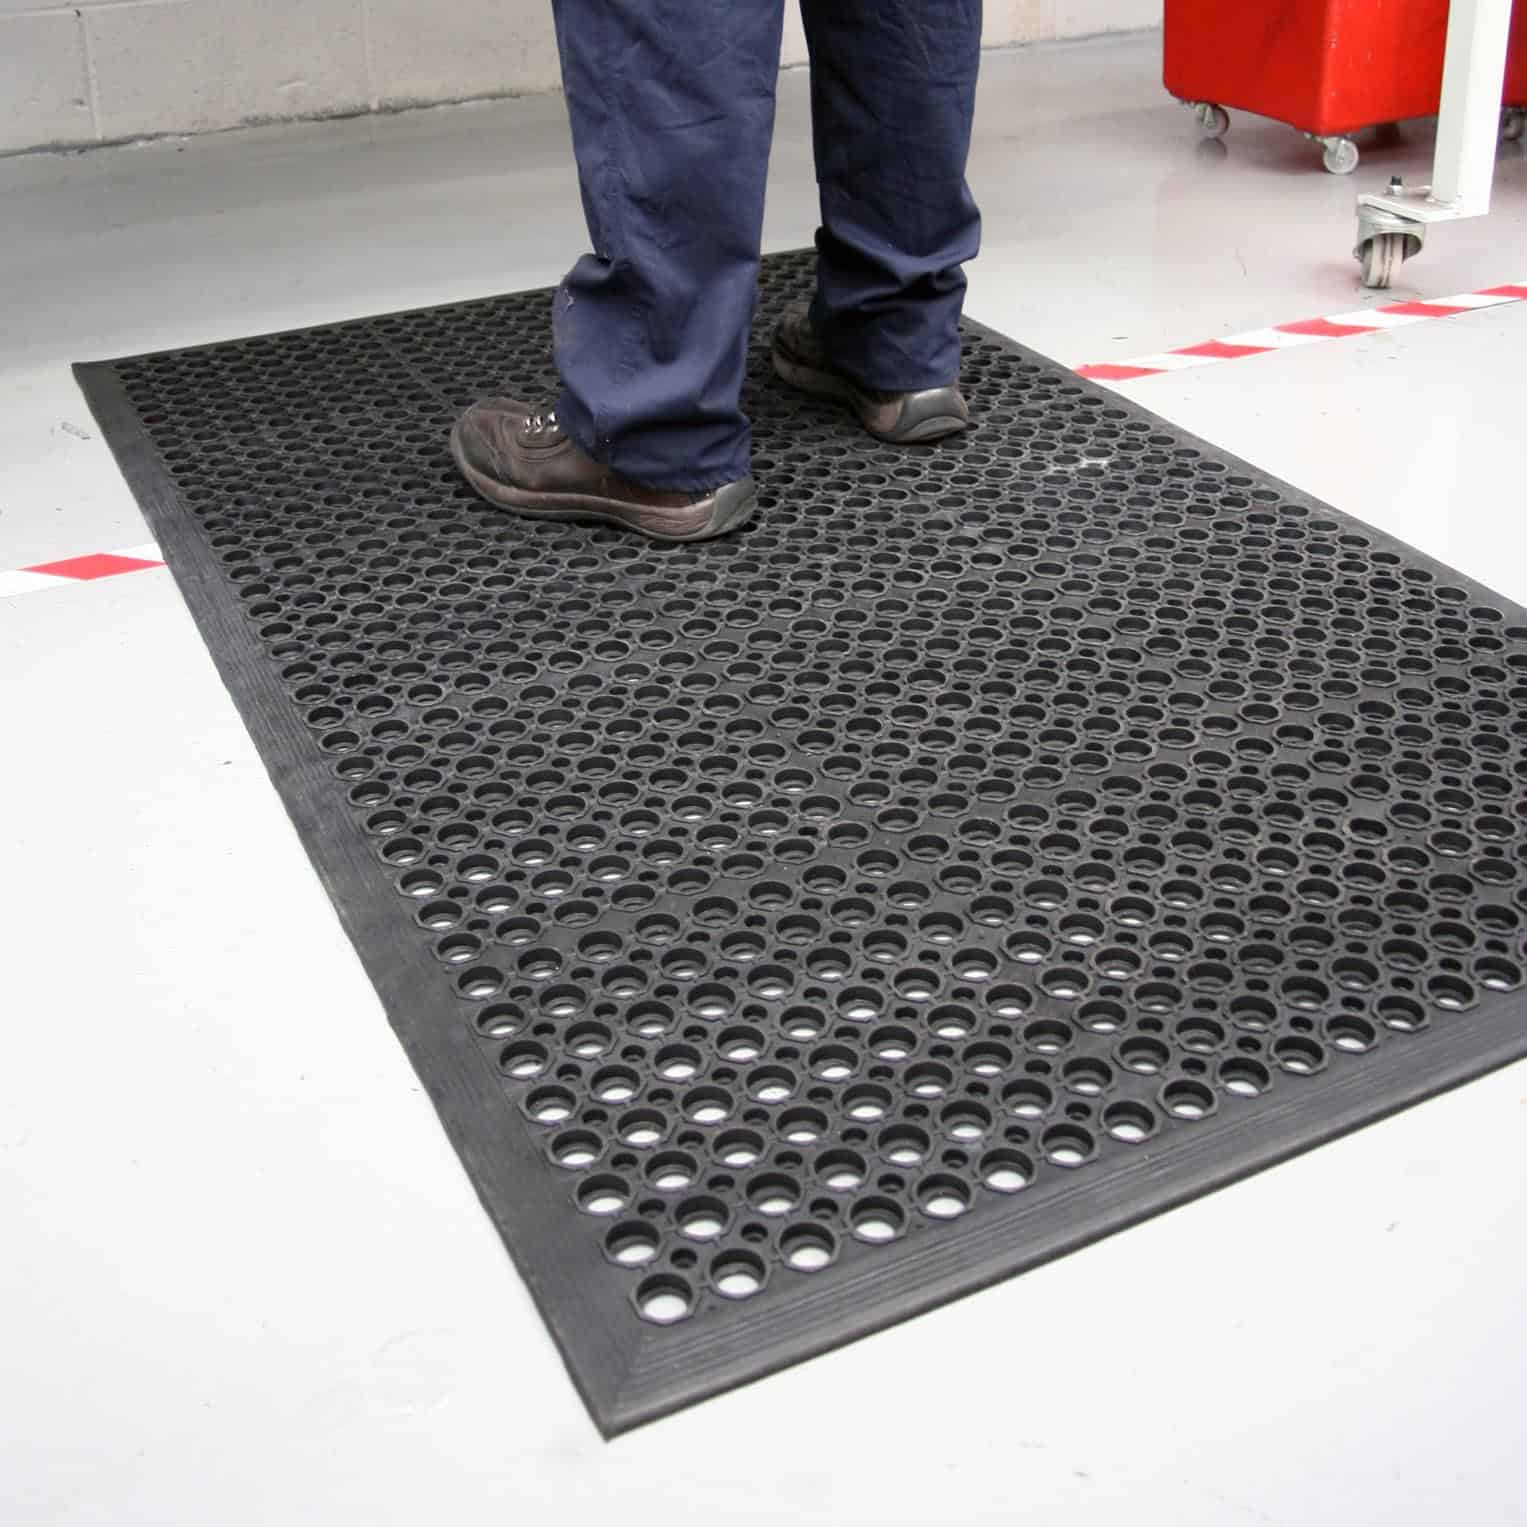 Rampmat Economical Anti-Fatigue Floor Matting